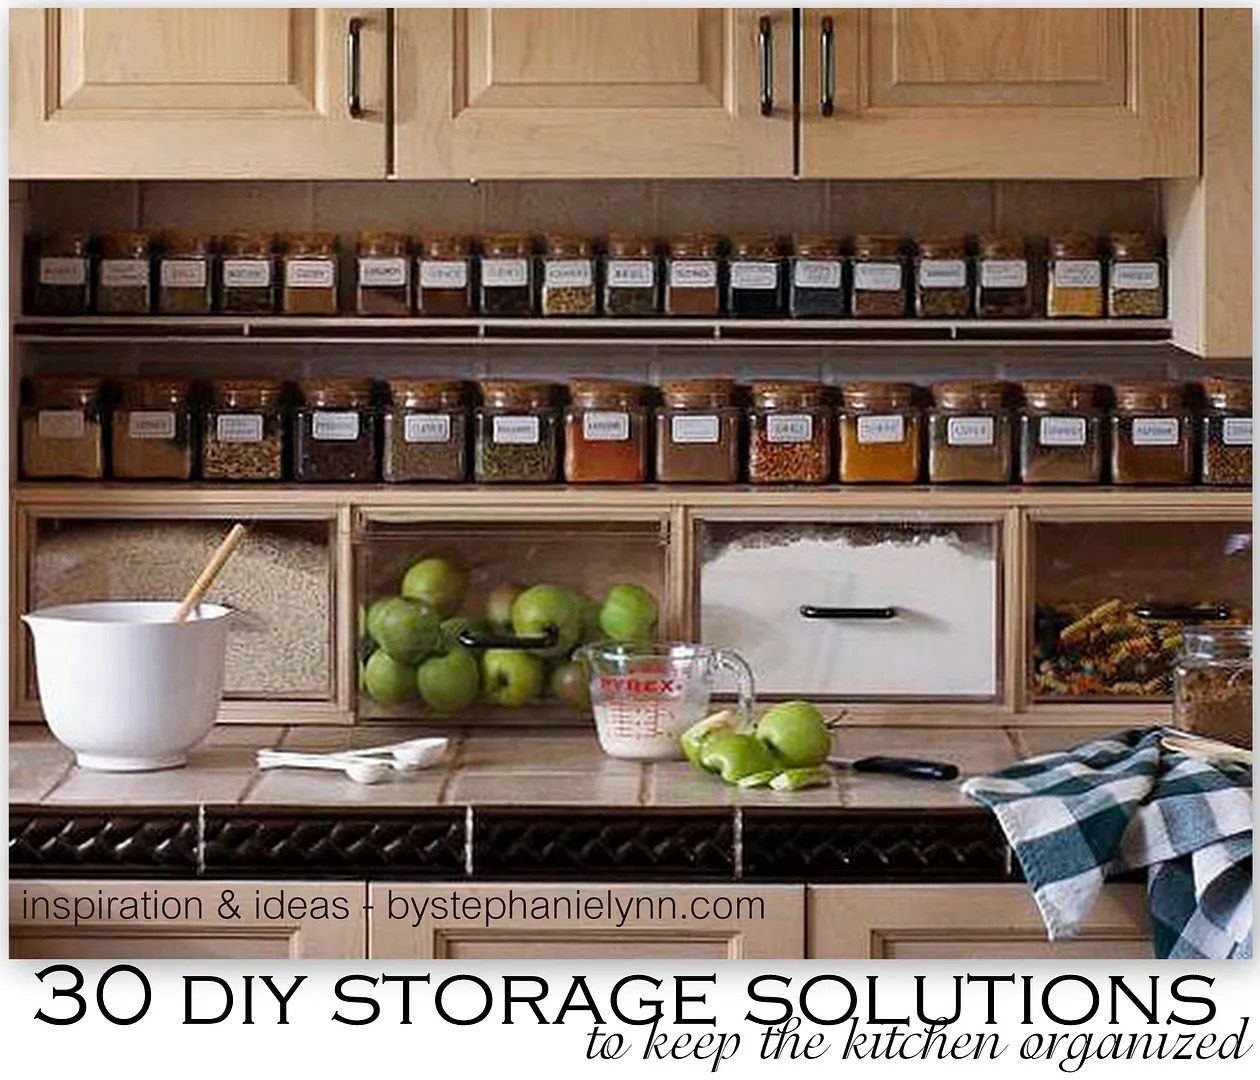 Storage Solutions 30 Diy Storage Solutions To Keep The Kitchen Organized Saturday